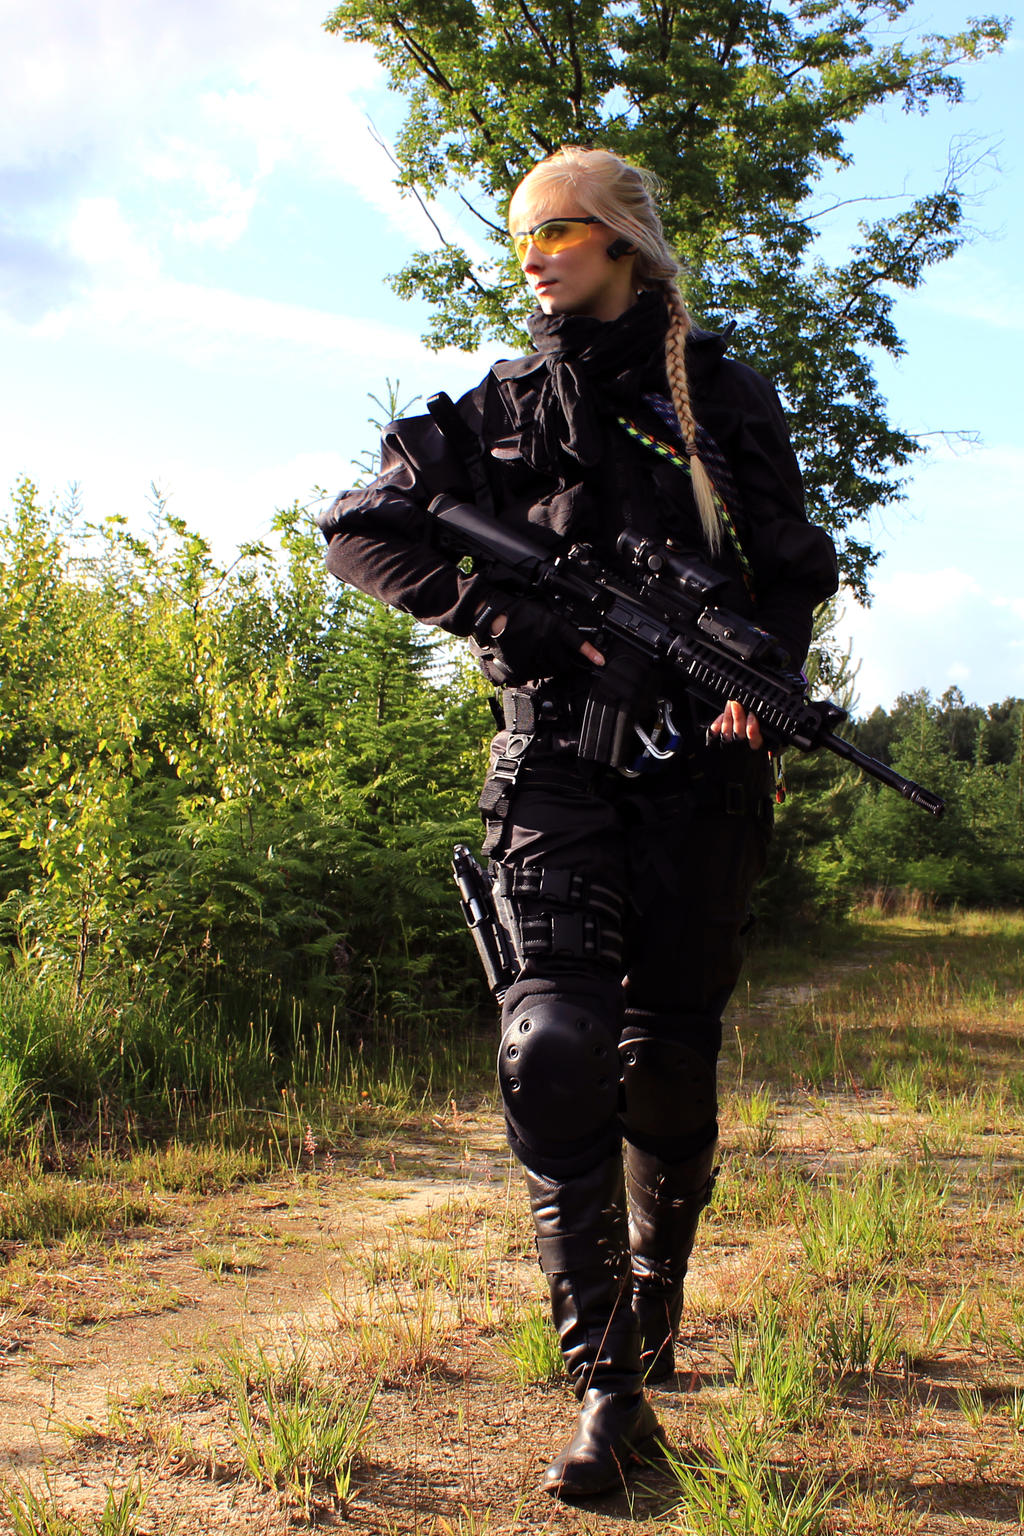 Airsoft Girl in a Match by PhelanDavion